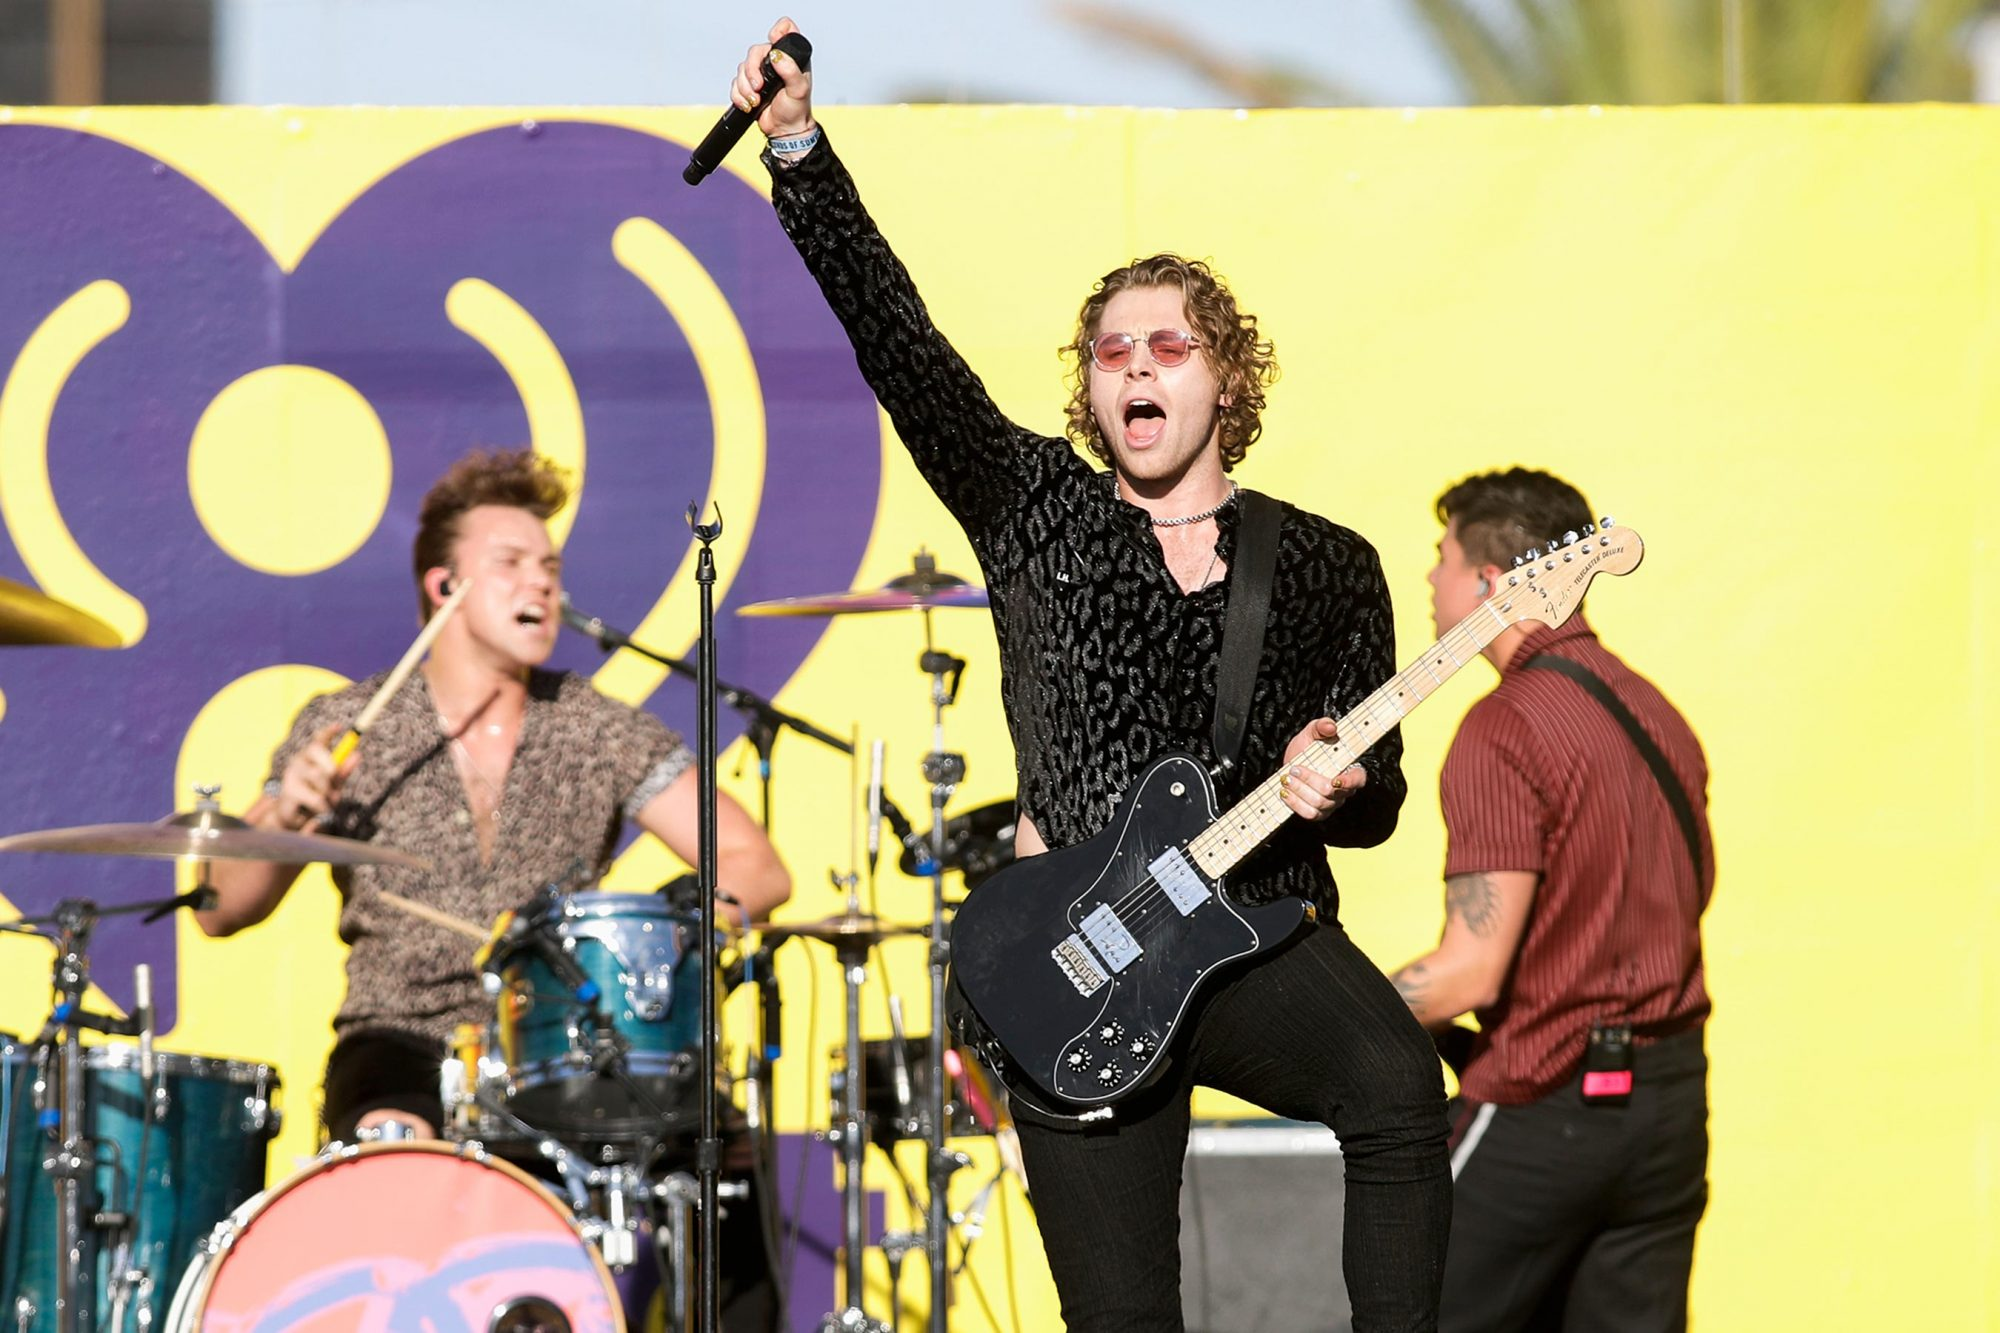 LAS VEGAS, NV - SEPTEMBER 22: (EDITORIAL USE ONLY; NO COMMERCIAL USE) (L-R) Ashton Irwin, Luke Hemmings and Calum Hood of 5 Seconds of Summer perform onstage during the 2018 iHeartRadio Music Festival Daytime Stage at the Las Vegas Festival Grounds on September 22, 2018 in Las Vegas, Nevada. (Photo by Isaac Brekken/Getty Images for iHeartMedia)